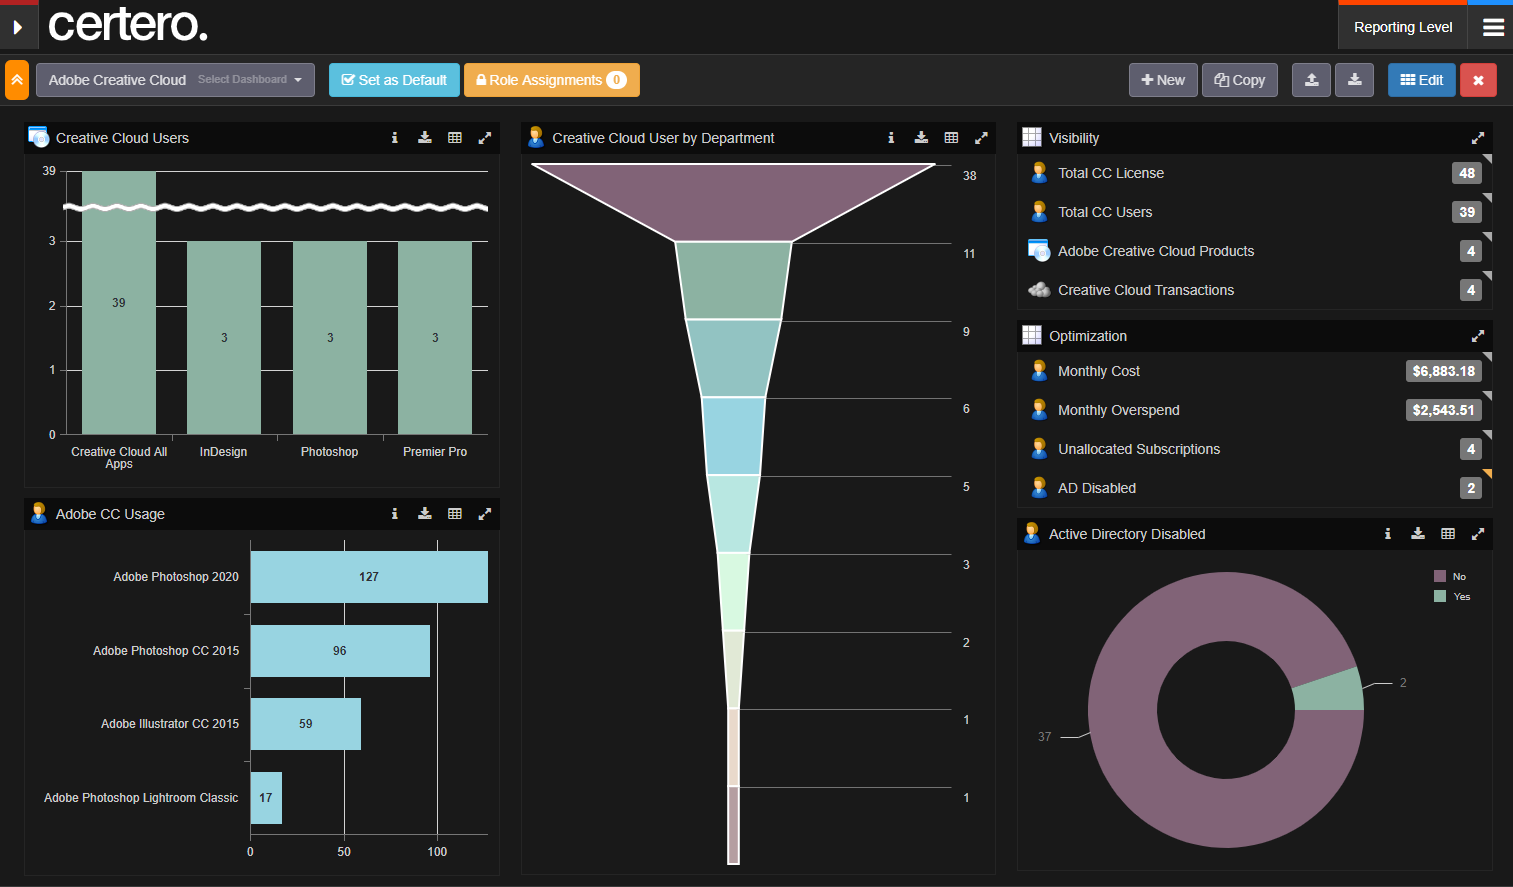 Certero for SaaS Software - Adobe Creative Cloud dashboard in dark-mode. Themes are customizable, so you could adopt corporate branding if desired. Reports are intuitive, so pre-canned reports aren't required - users can ask questions and get answers directly.